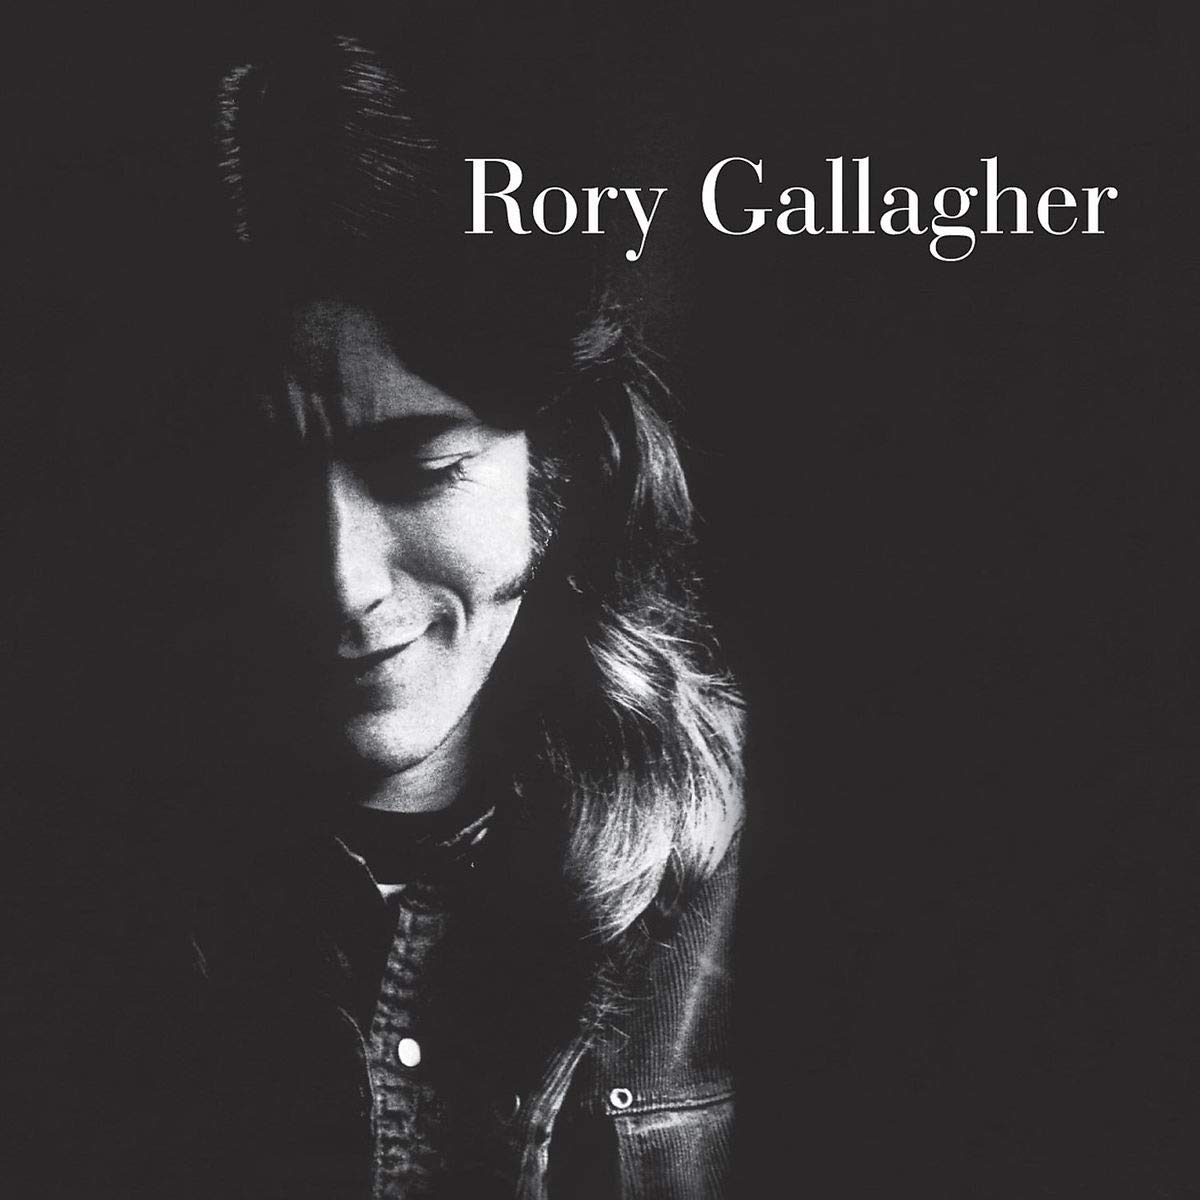 Rory Gallagher - Rory Gallagher [Import LP]